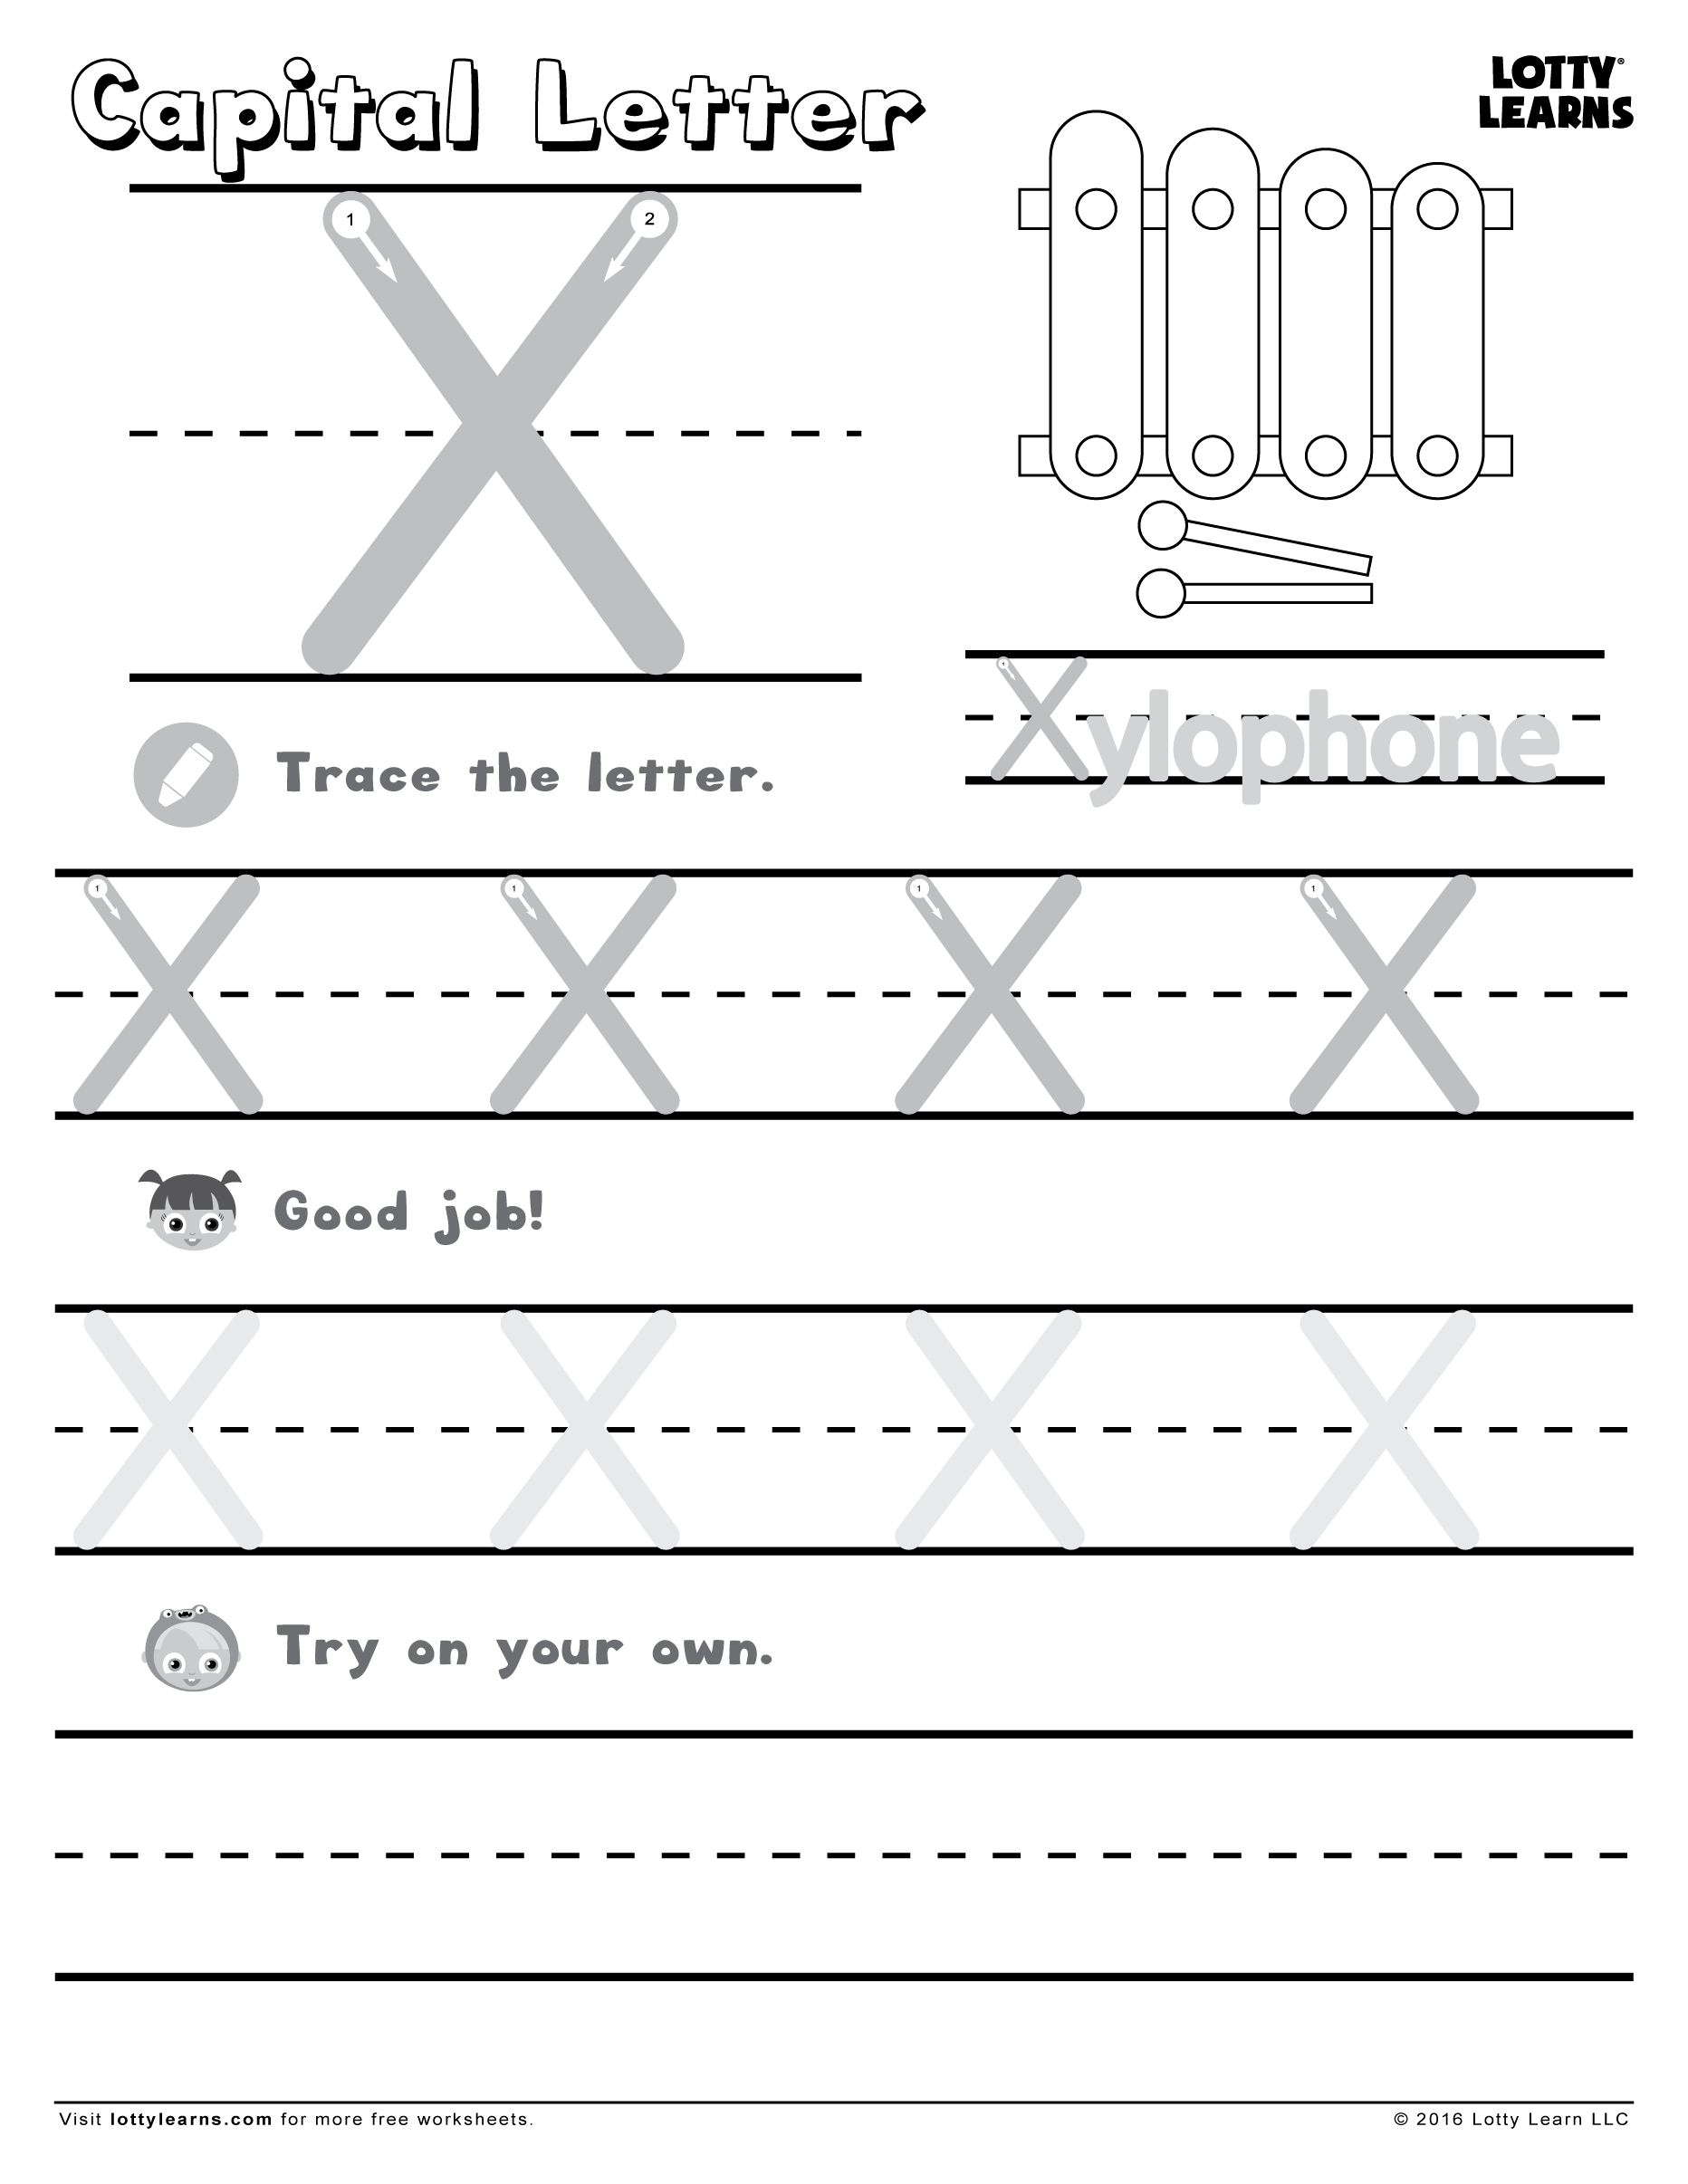 capital letter x lotty learns abc printables uppercase lowercase a letter t worksheets. Black Bedroom Furniture Sets. Home Design Ideas